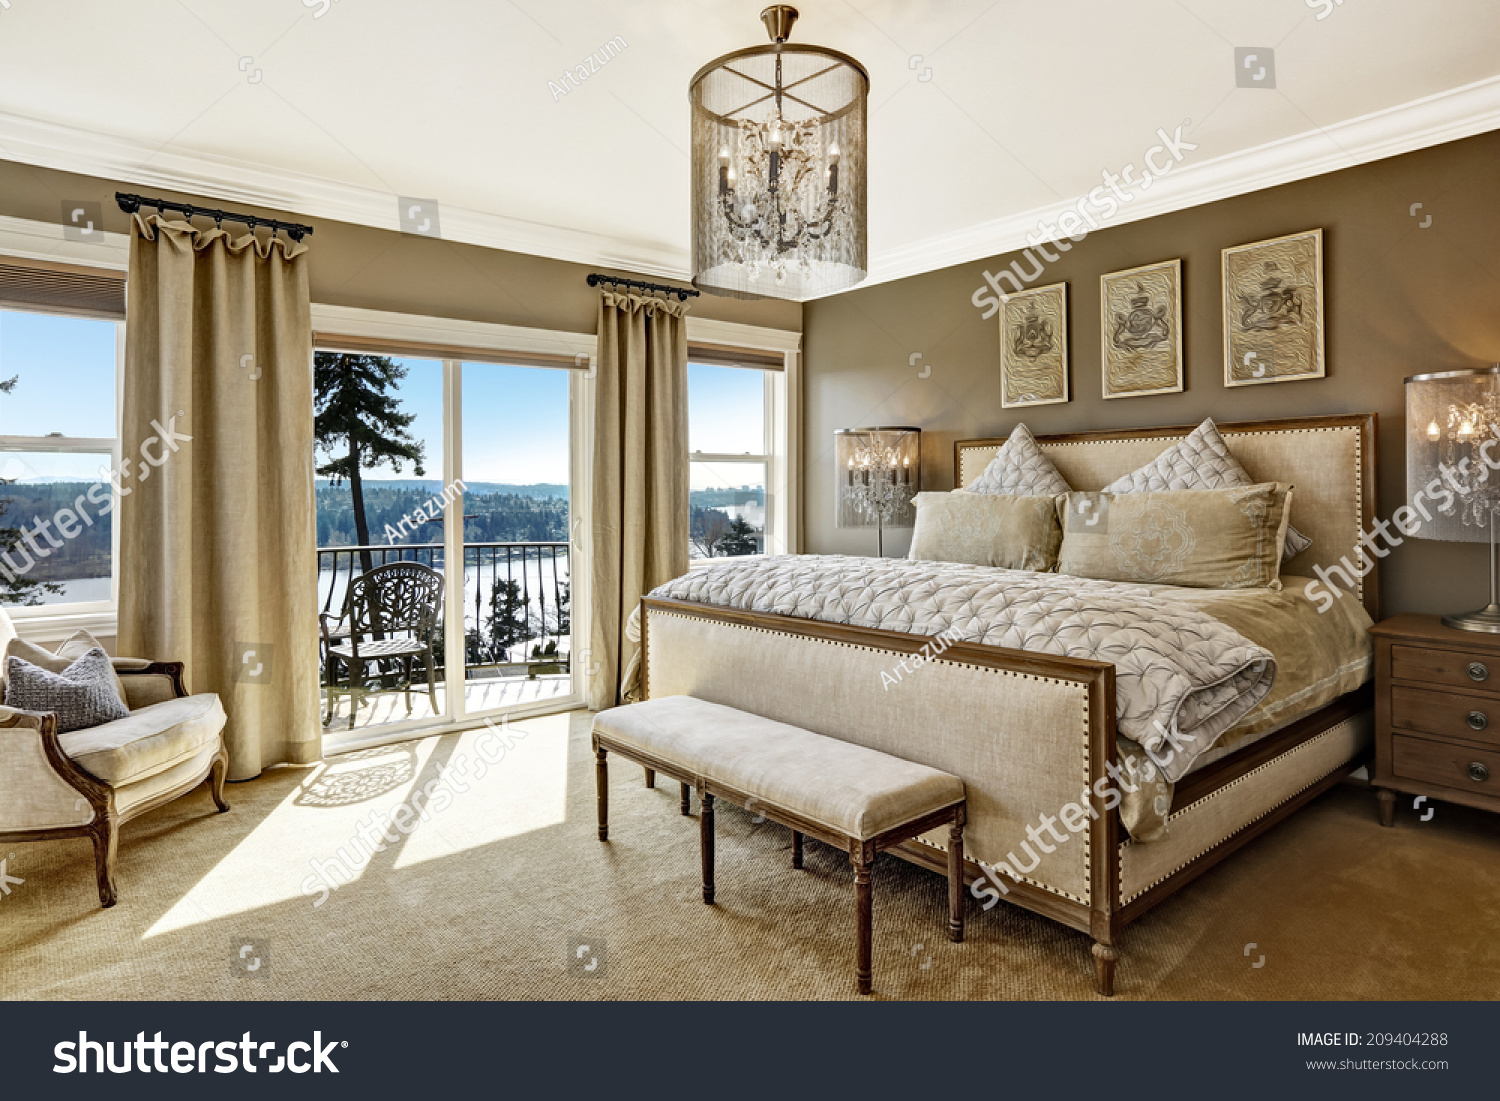 Luxury bedroom interior with rich furniture and scenic view from walkout deck stock photo - Image bed room ...